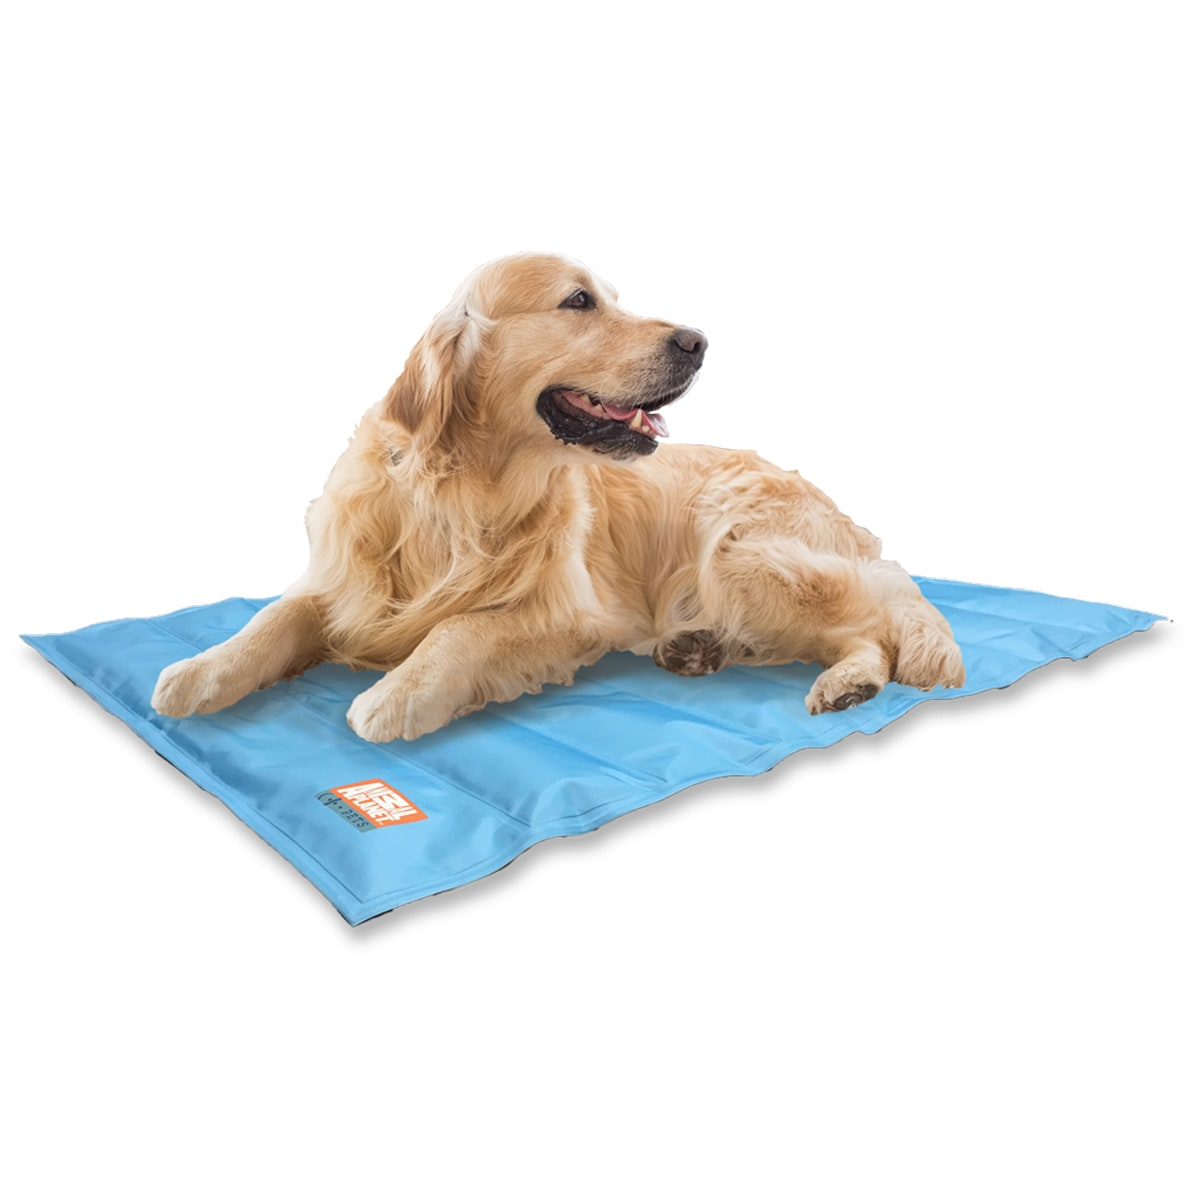 cat il washable mat small pet listing bed puppy fullxfull eco felt felted handmade wool dog